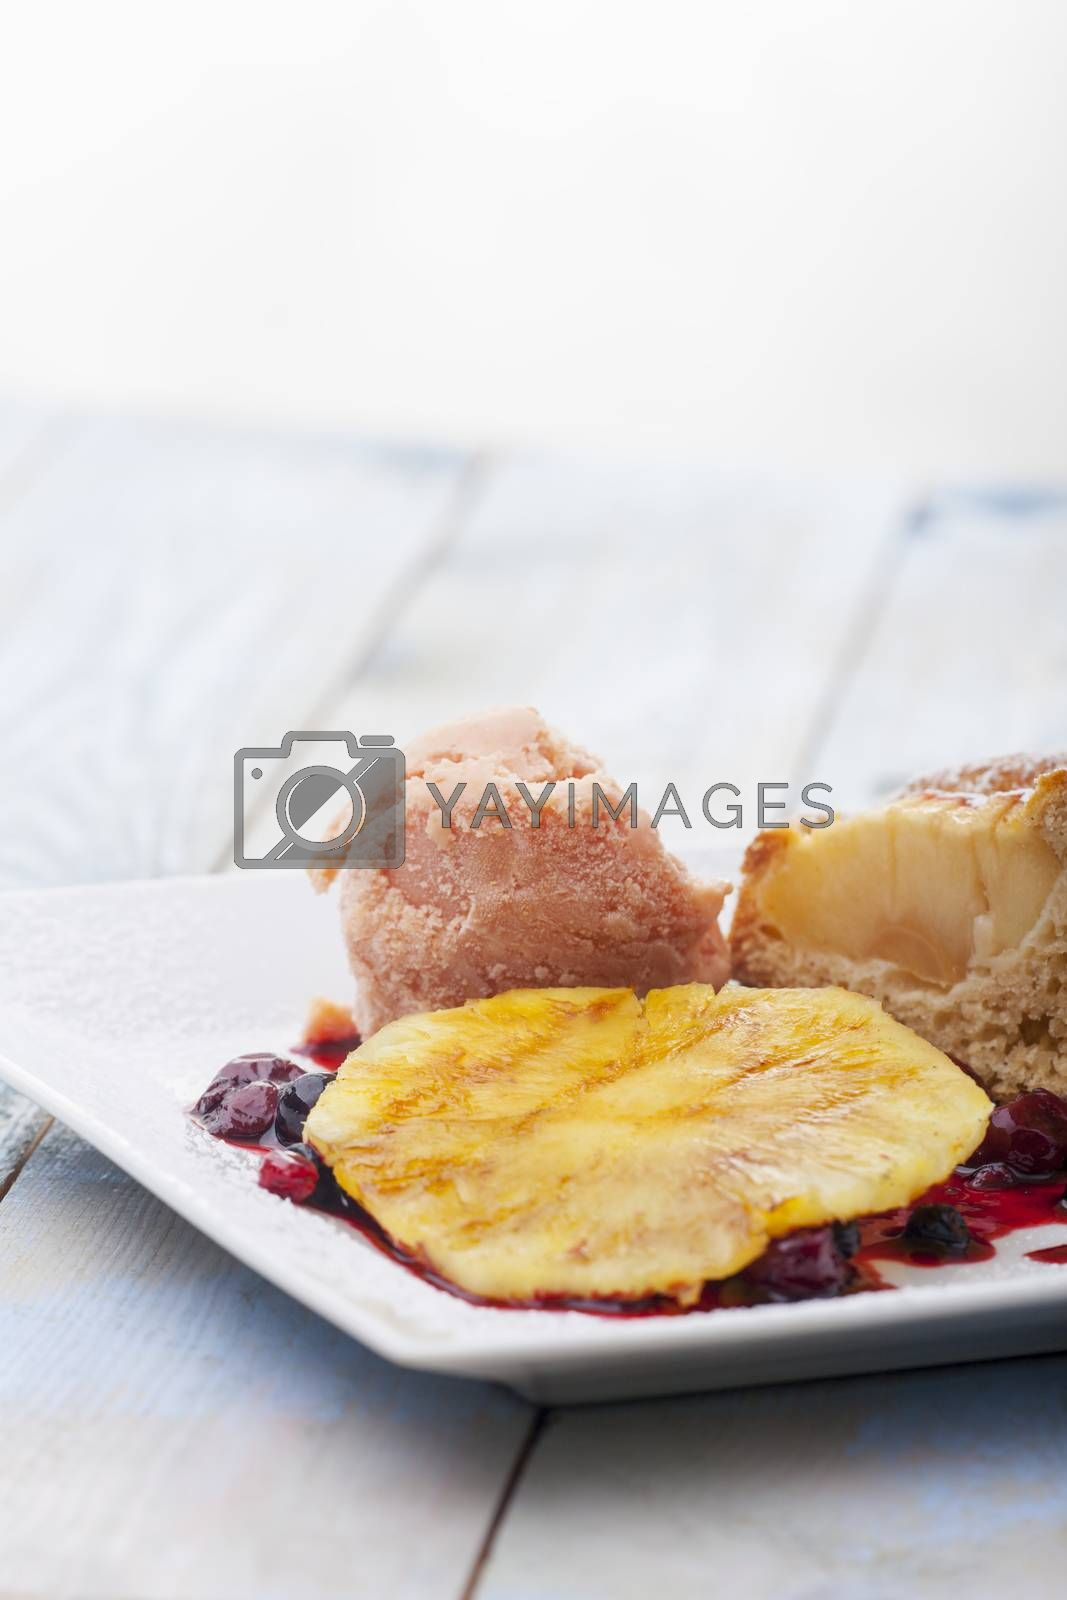 grilled pineapple with ice cream on a plate